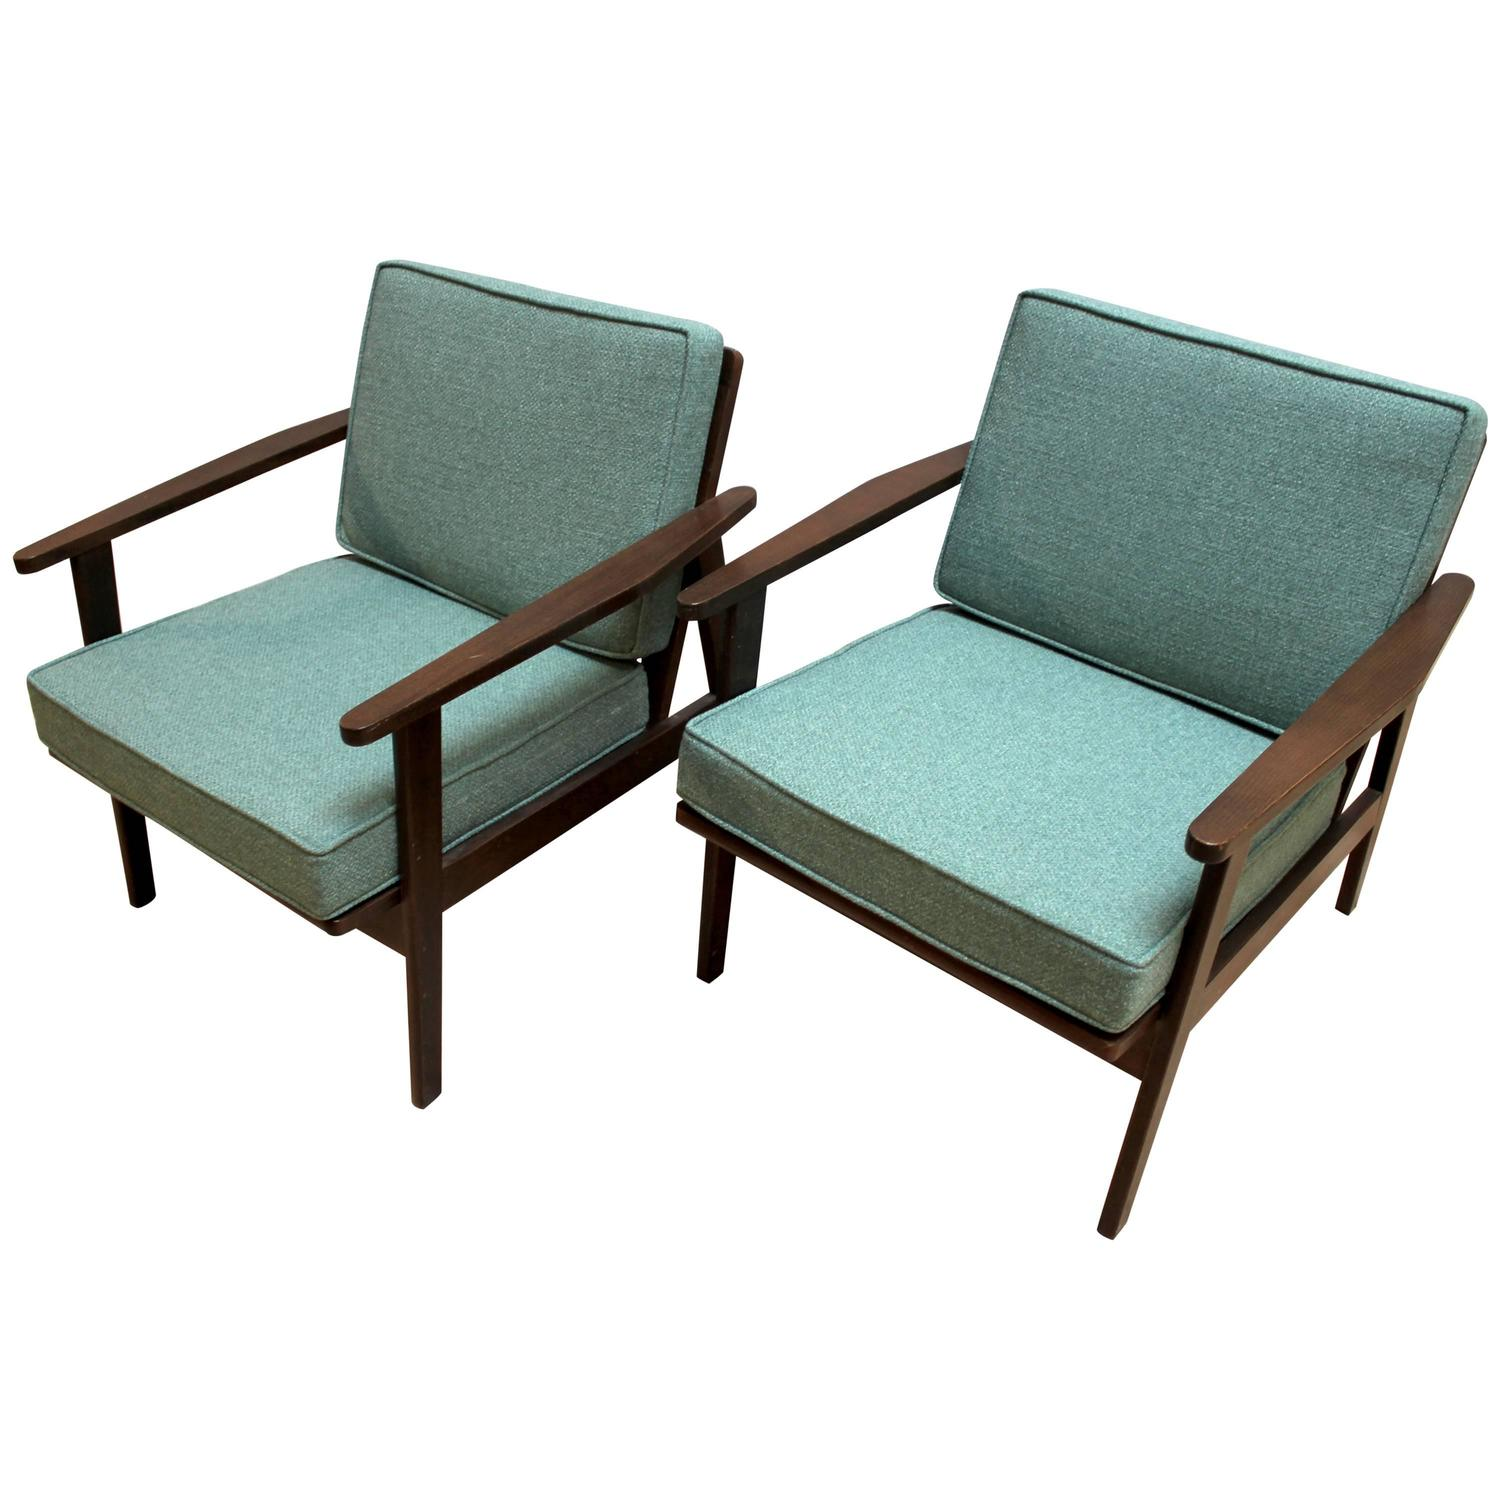 Japanese Chair Pair Of 1950s Japanese Mid Century Modern Upholstered